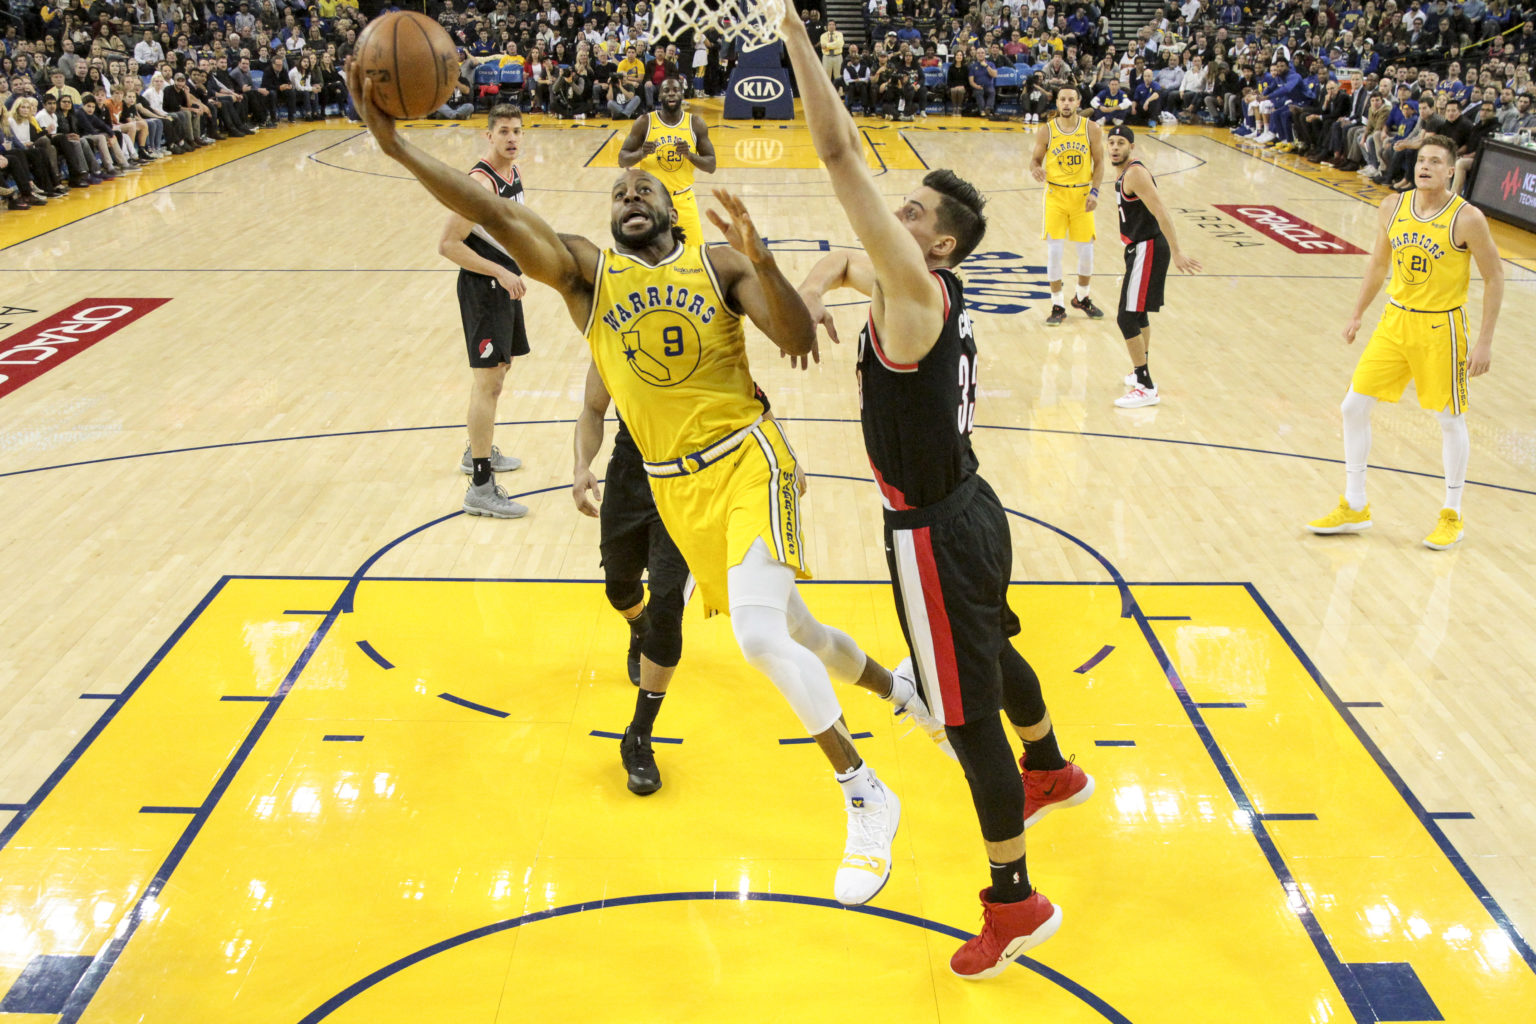 Warriors forward Kevin Durant (35) goes for a lay-up in the lane against the Trail Blazers during the second period of the game at Oracle Arena on December 27, 2018 in Oakland, California. (Chris Victorio